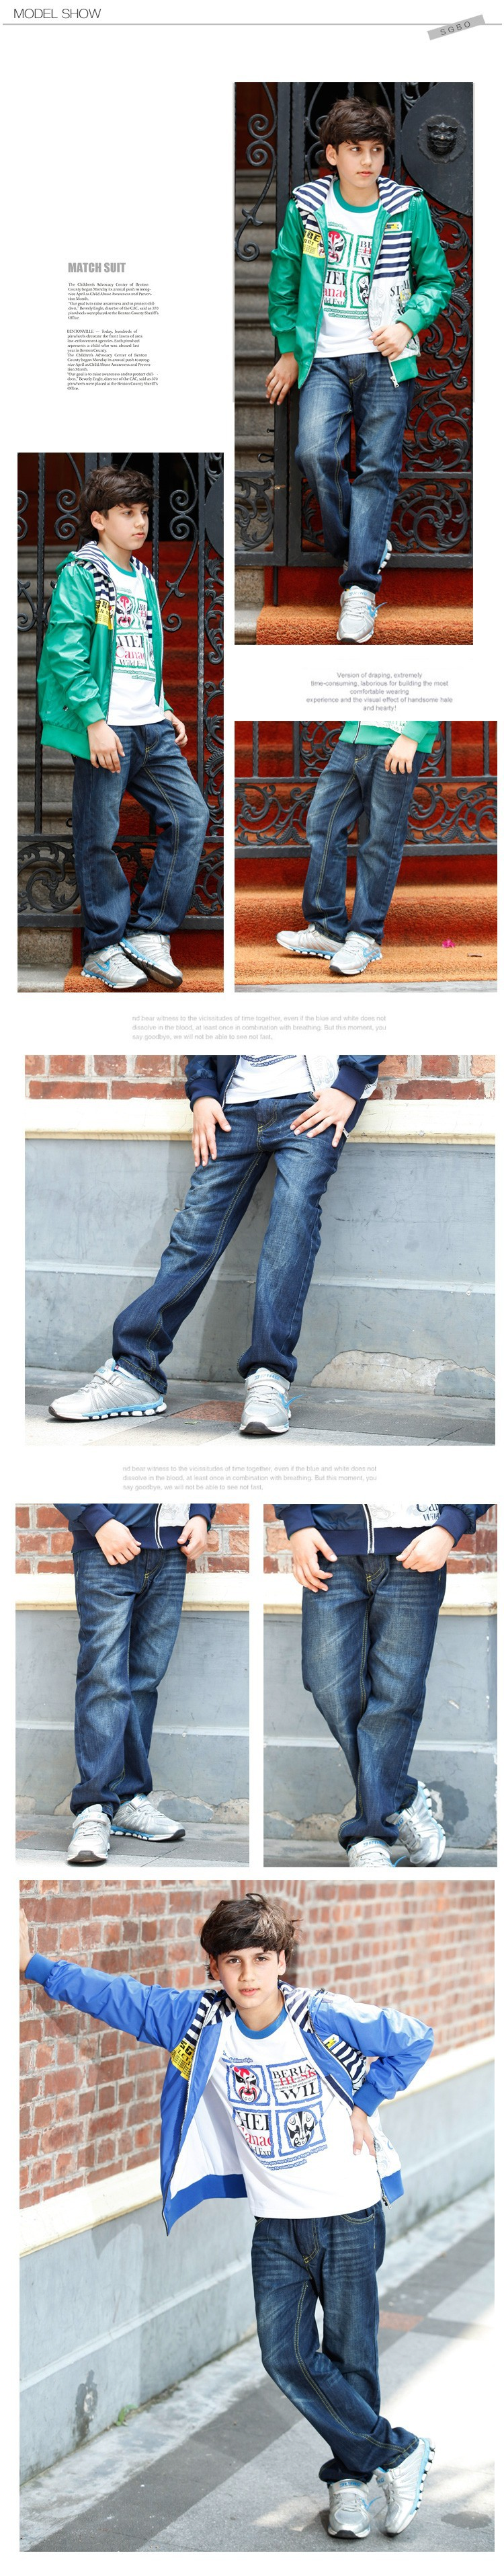 2015 New Fashion Big Boys Jeans Kids High Quality Brand Denim Trousers Children Casual Cowboy Pants Big Size 6 8 10 12 14 16 Y (6)